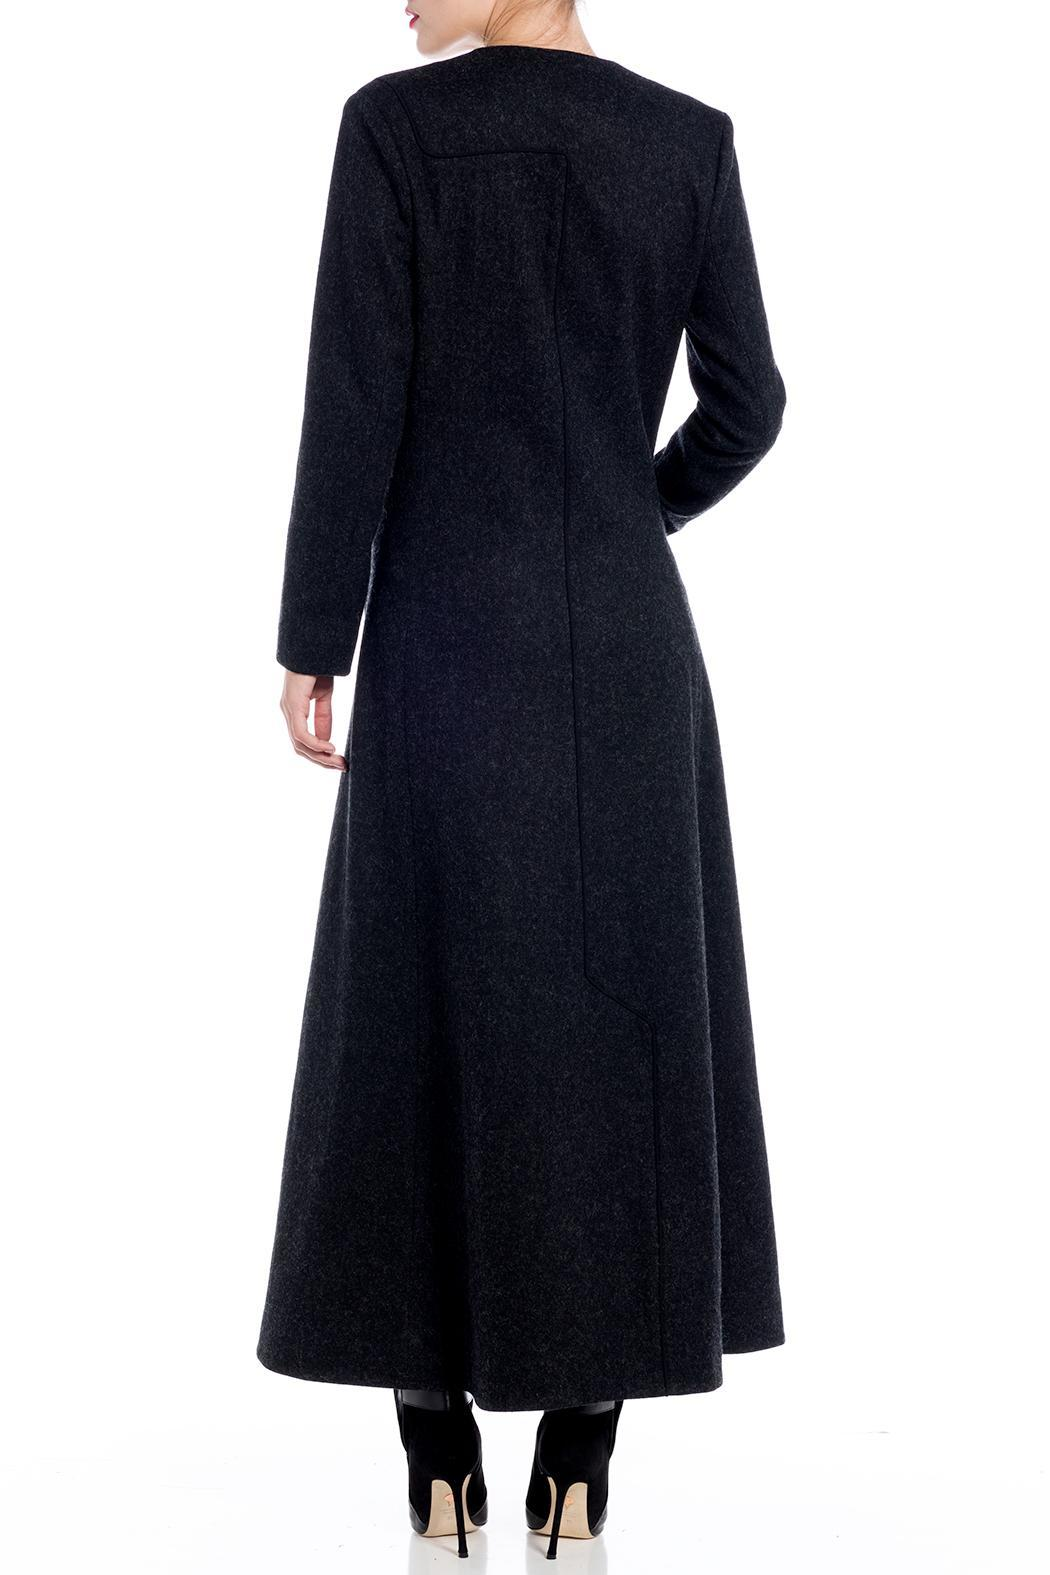 J JS Lee Wool Maxi Coat from Vancouver by Wardrobe Apparel ...